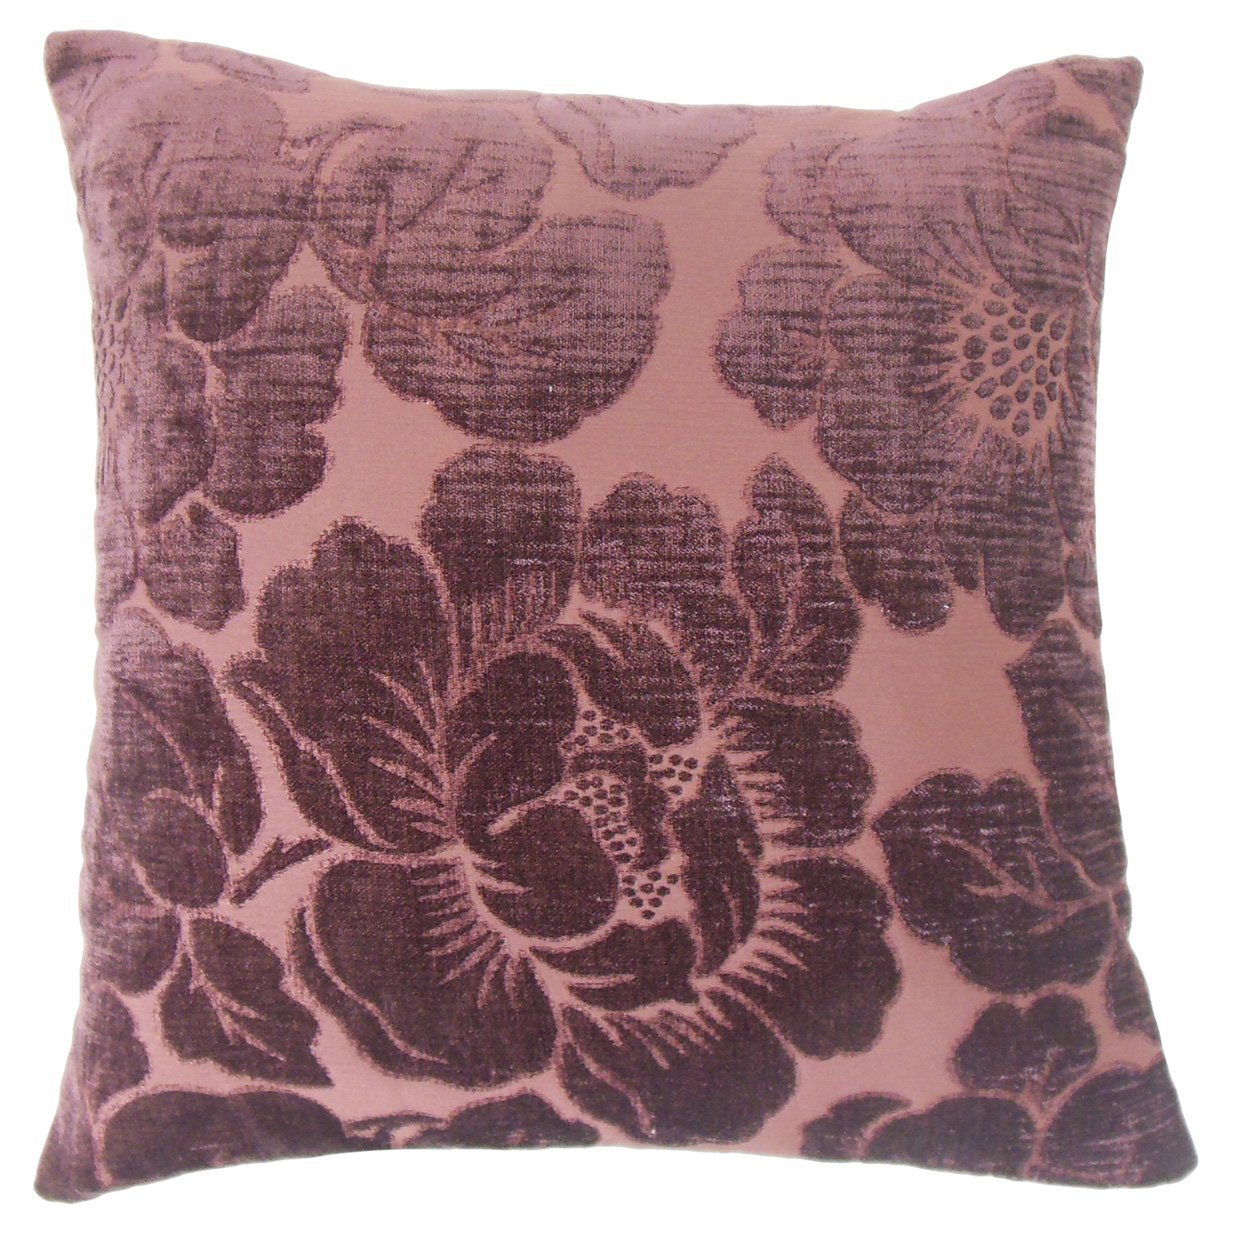 The Pillow Collection Cenobia Floral Throw Pillow Cover Home Kitchen Throw Pillow Covers